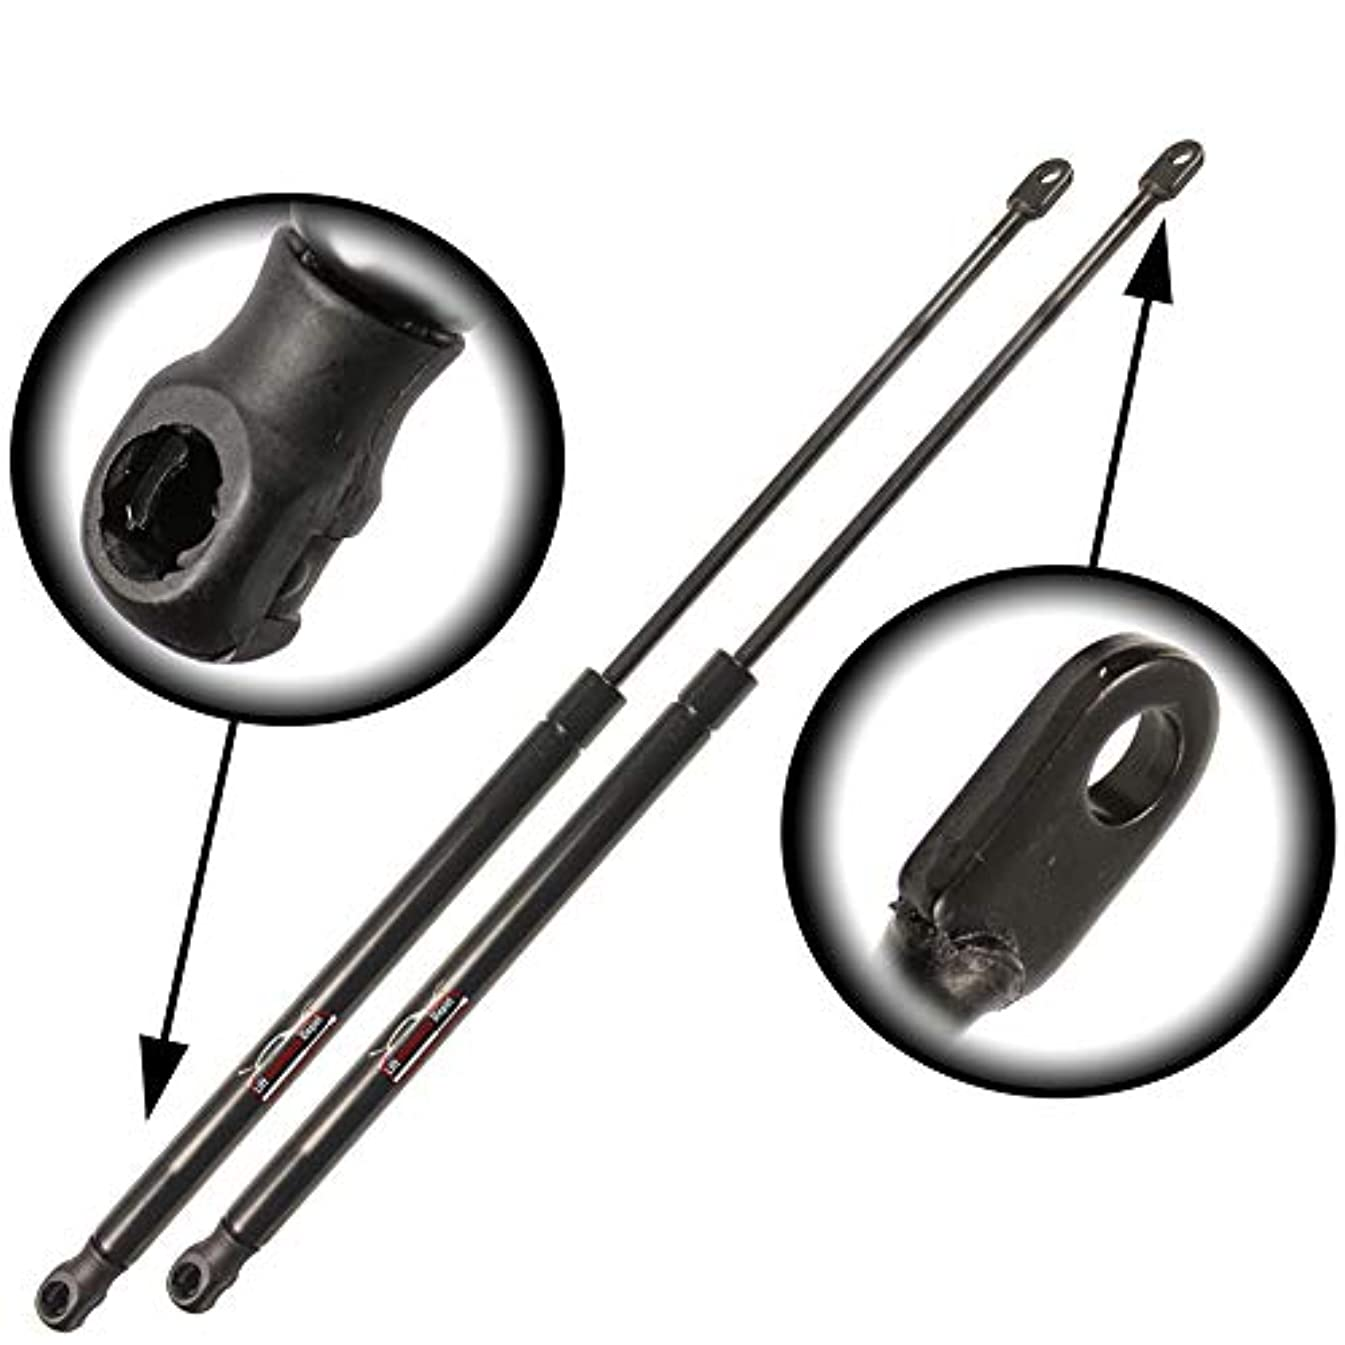 Qty (2) Fits VW Vanagon 1984 To 1991 Liftgate Lift Support (With Added Pressure)